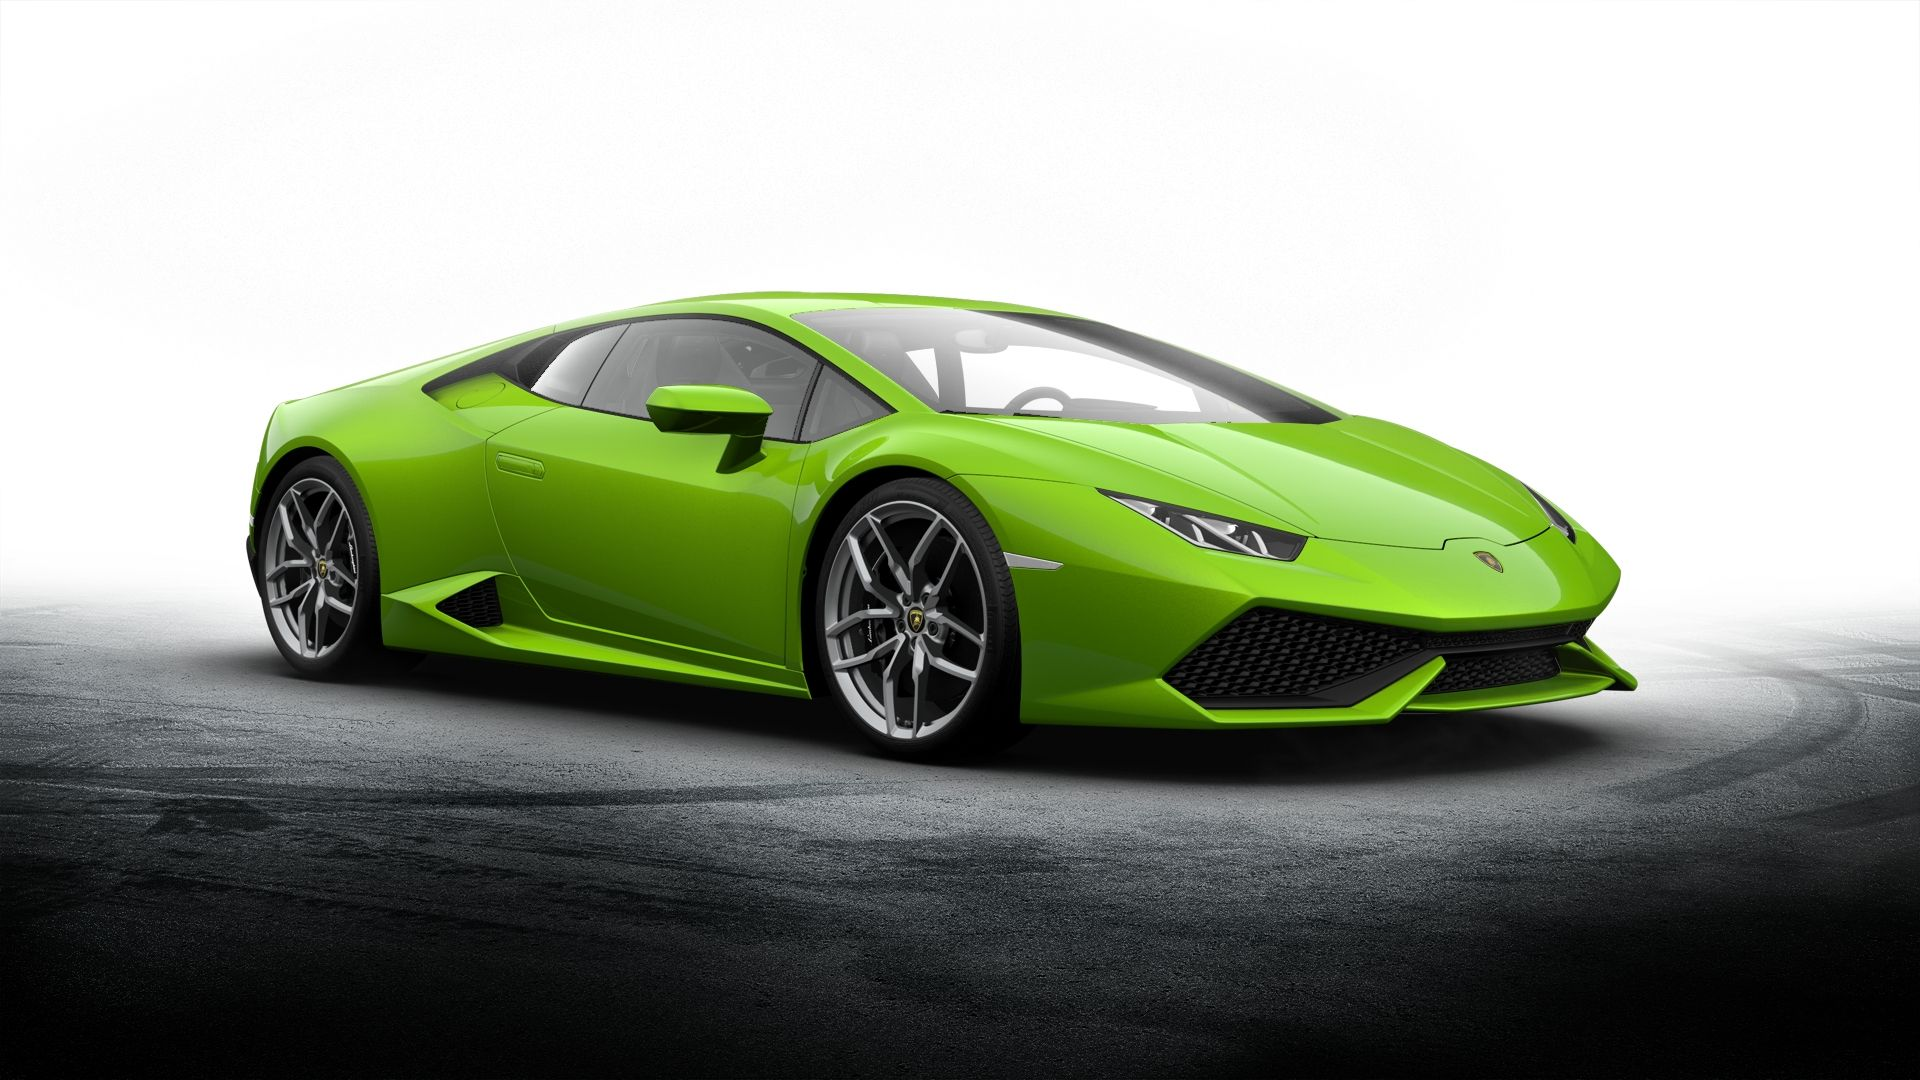 car the for celebrity blog do insurance and pay a lamborghini famous aventador what lamborghiniaventadorinsurance rich